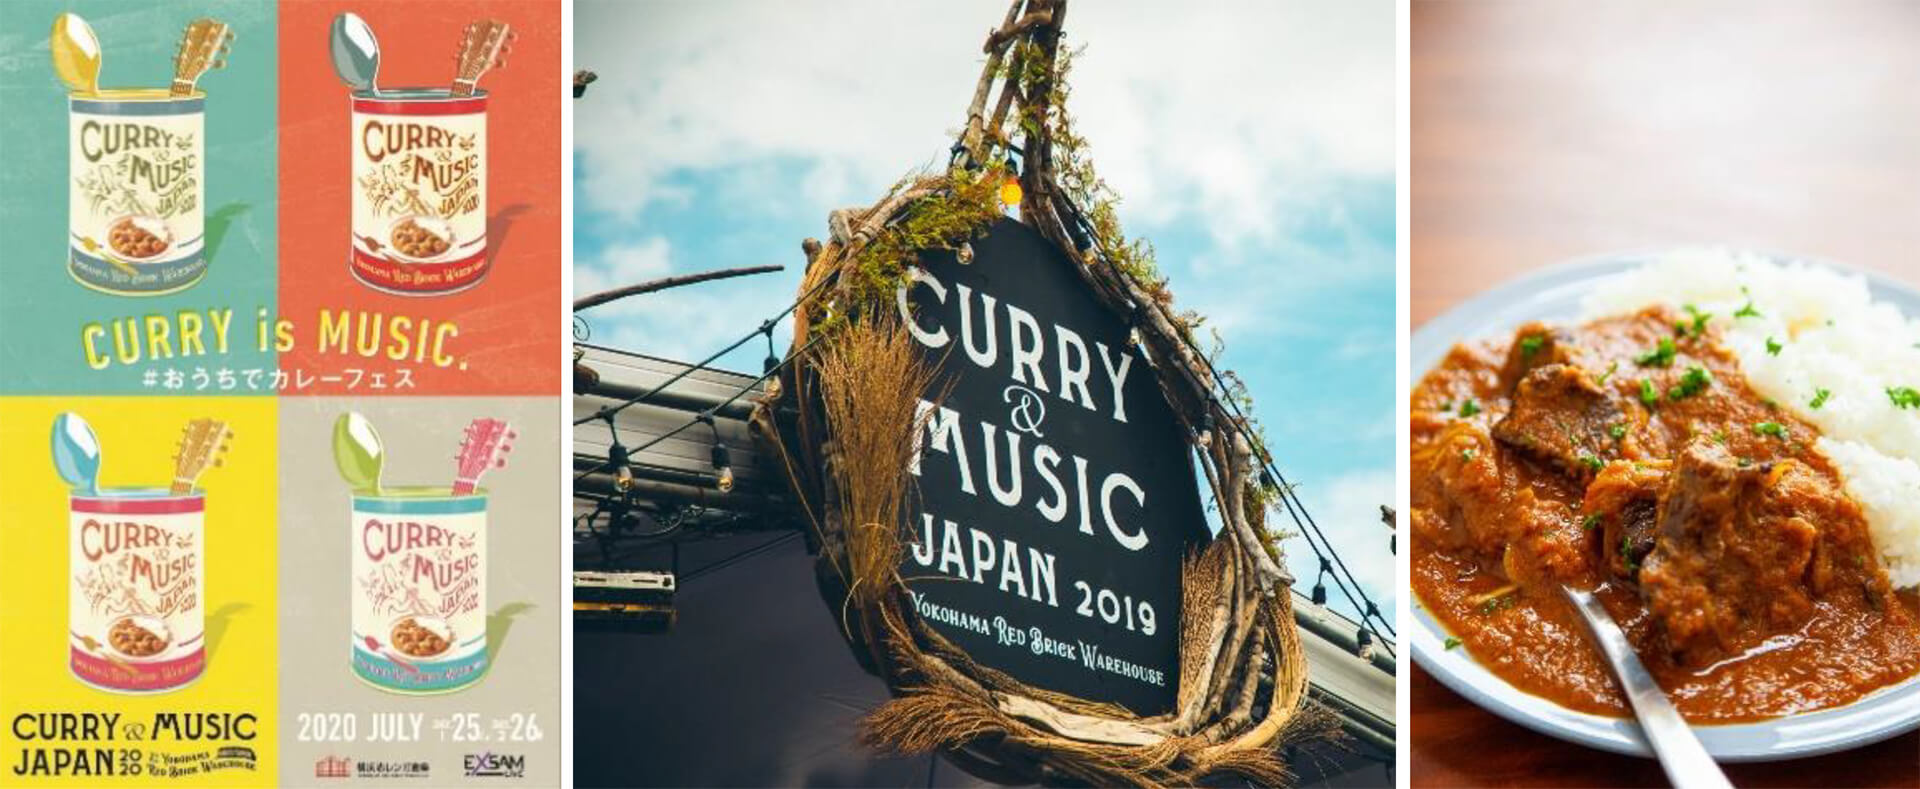 CURRY&MUSIC JAPAN